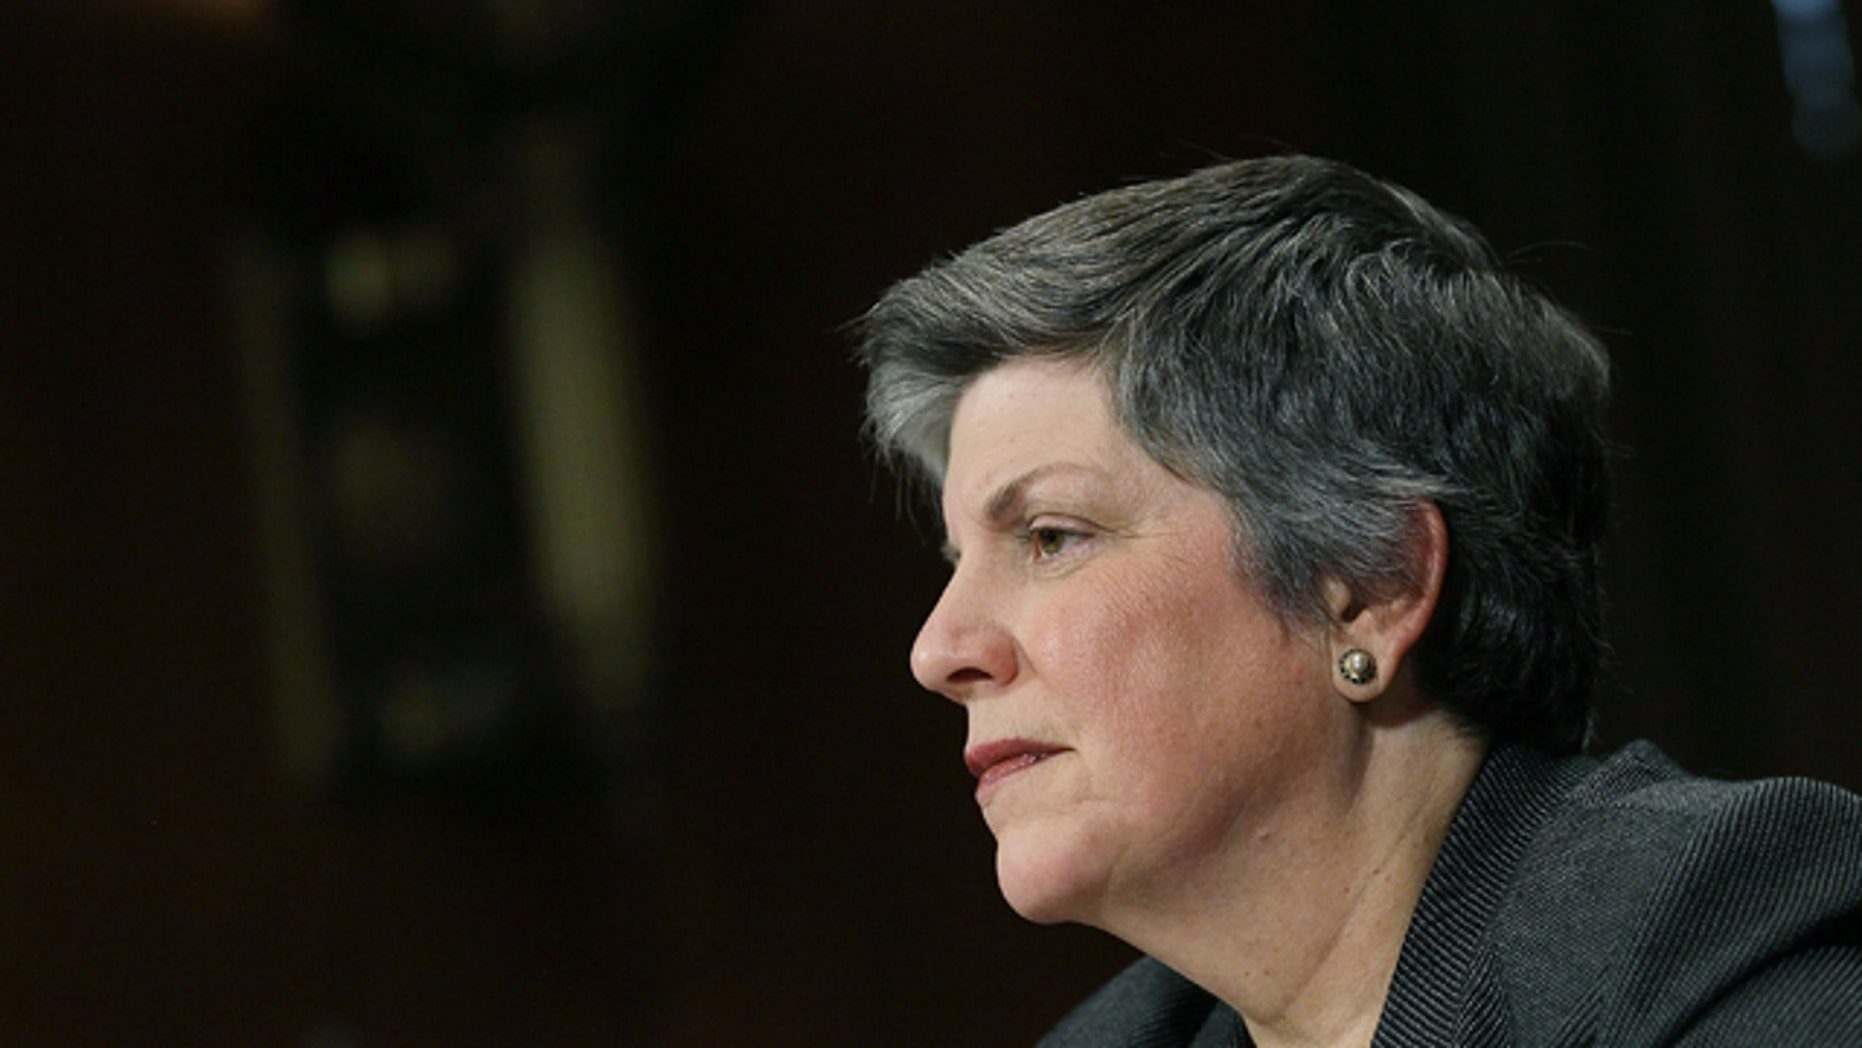 April 25, 2012: Homeland Security Secretary Janet Napolitano participates in a Senate Judiciary Committee hearing, in Washington, D.C.